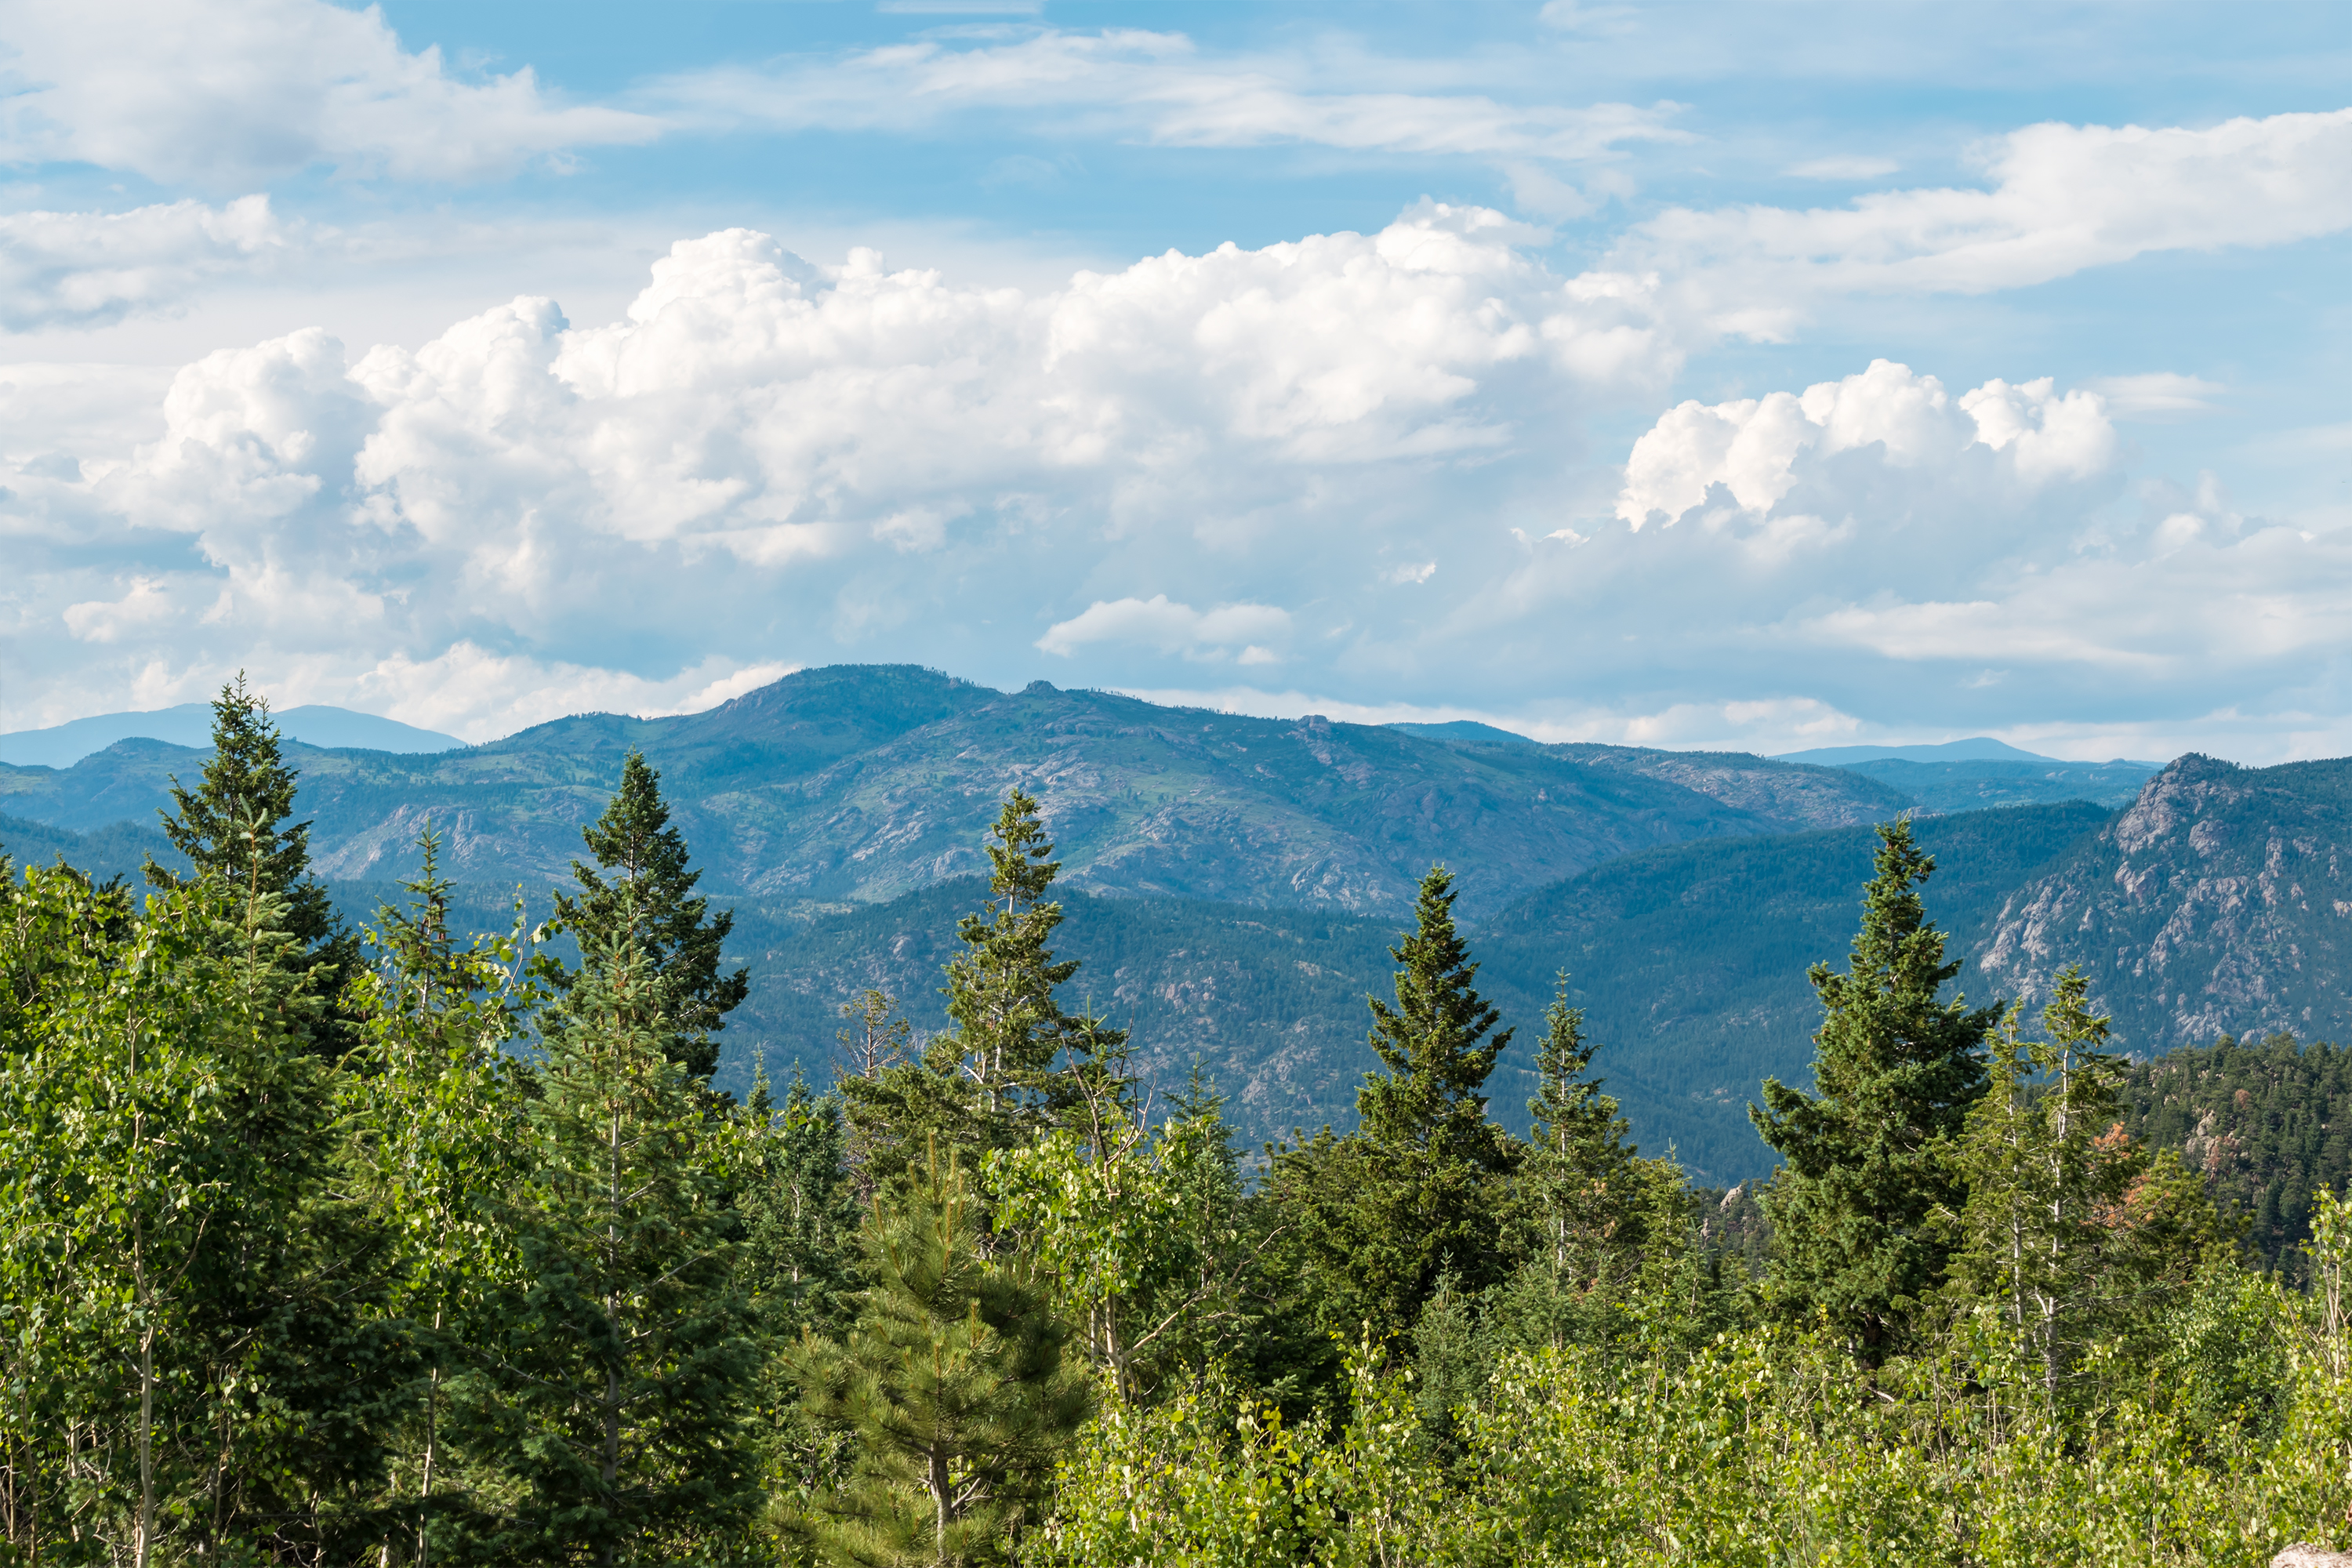 Mountain HDR 1 by Chillstice